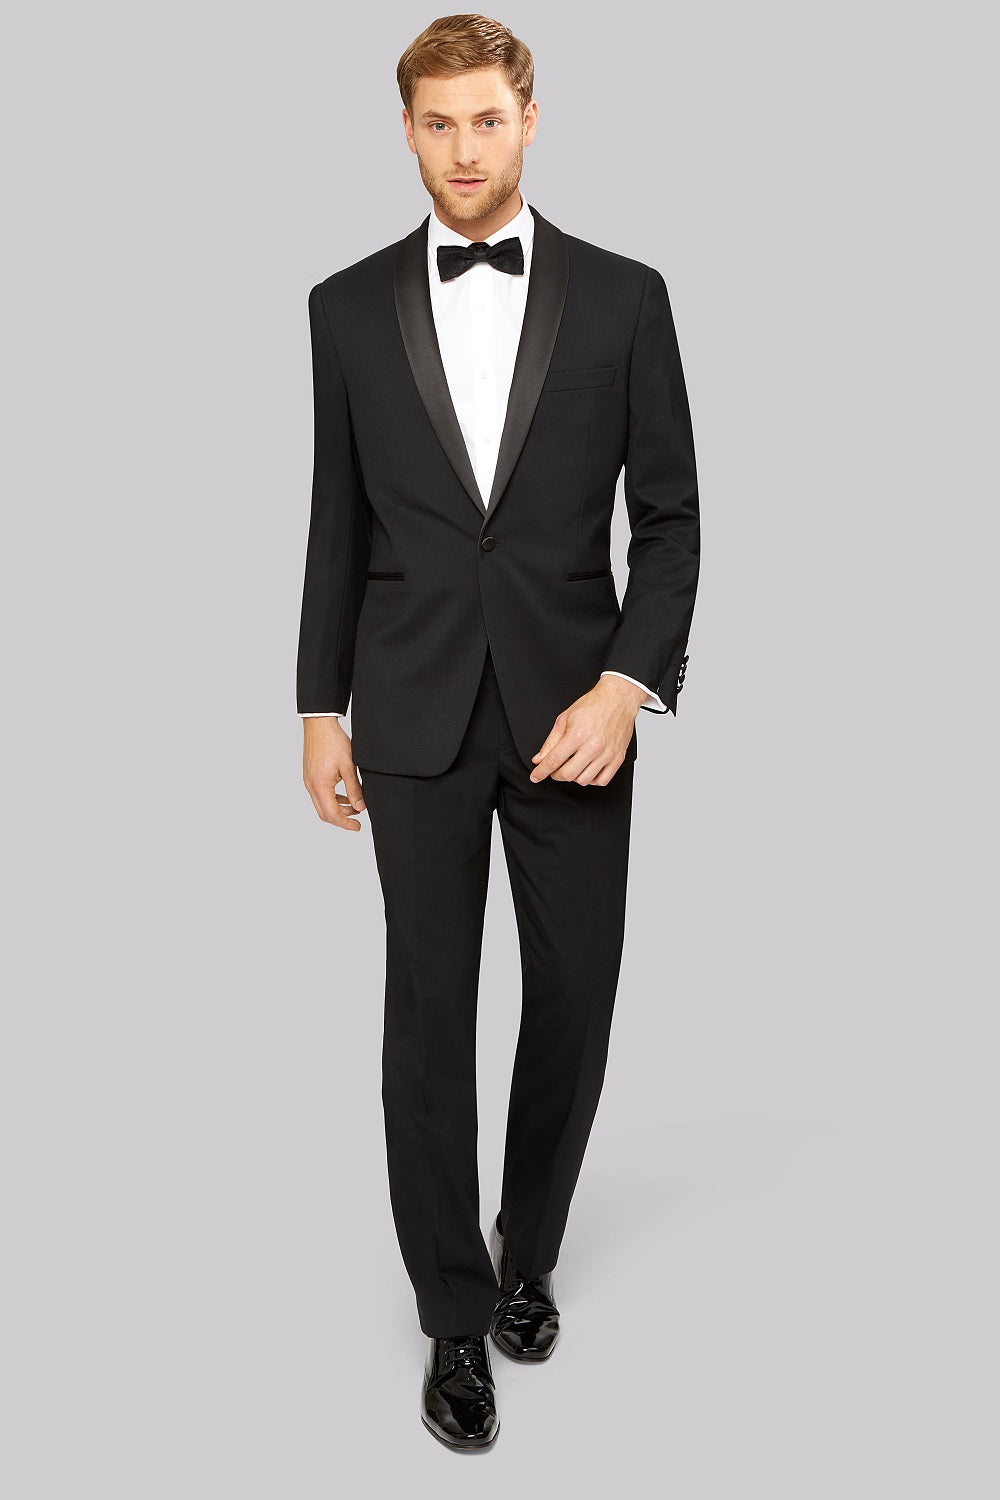 Classic Shawl Collar Tuxedo in Black